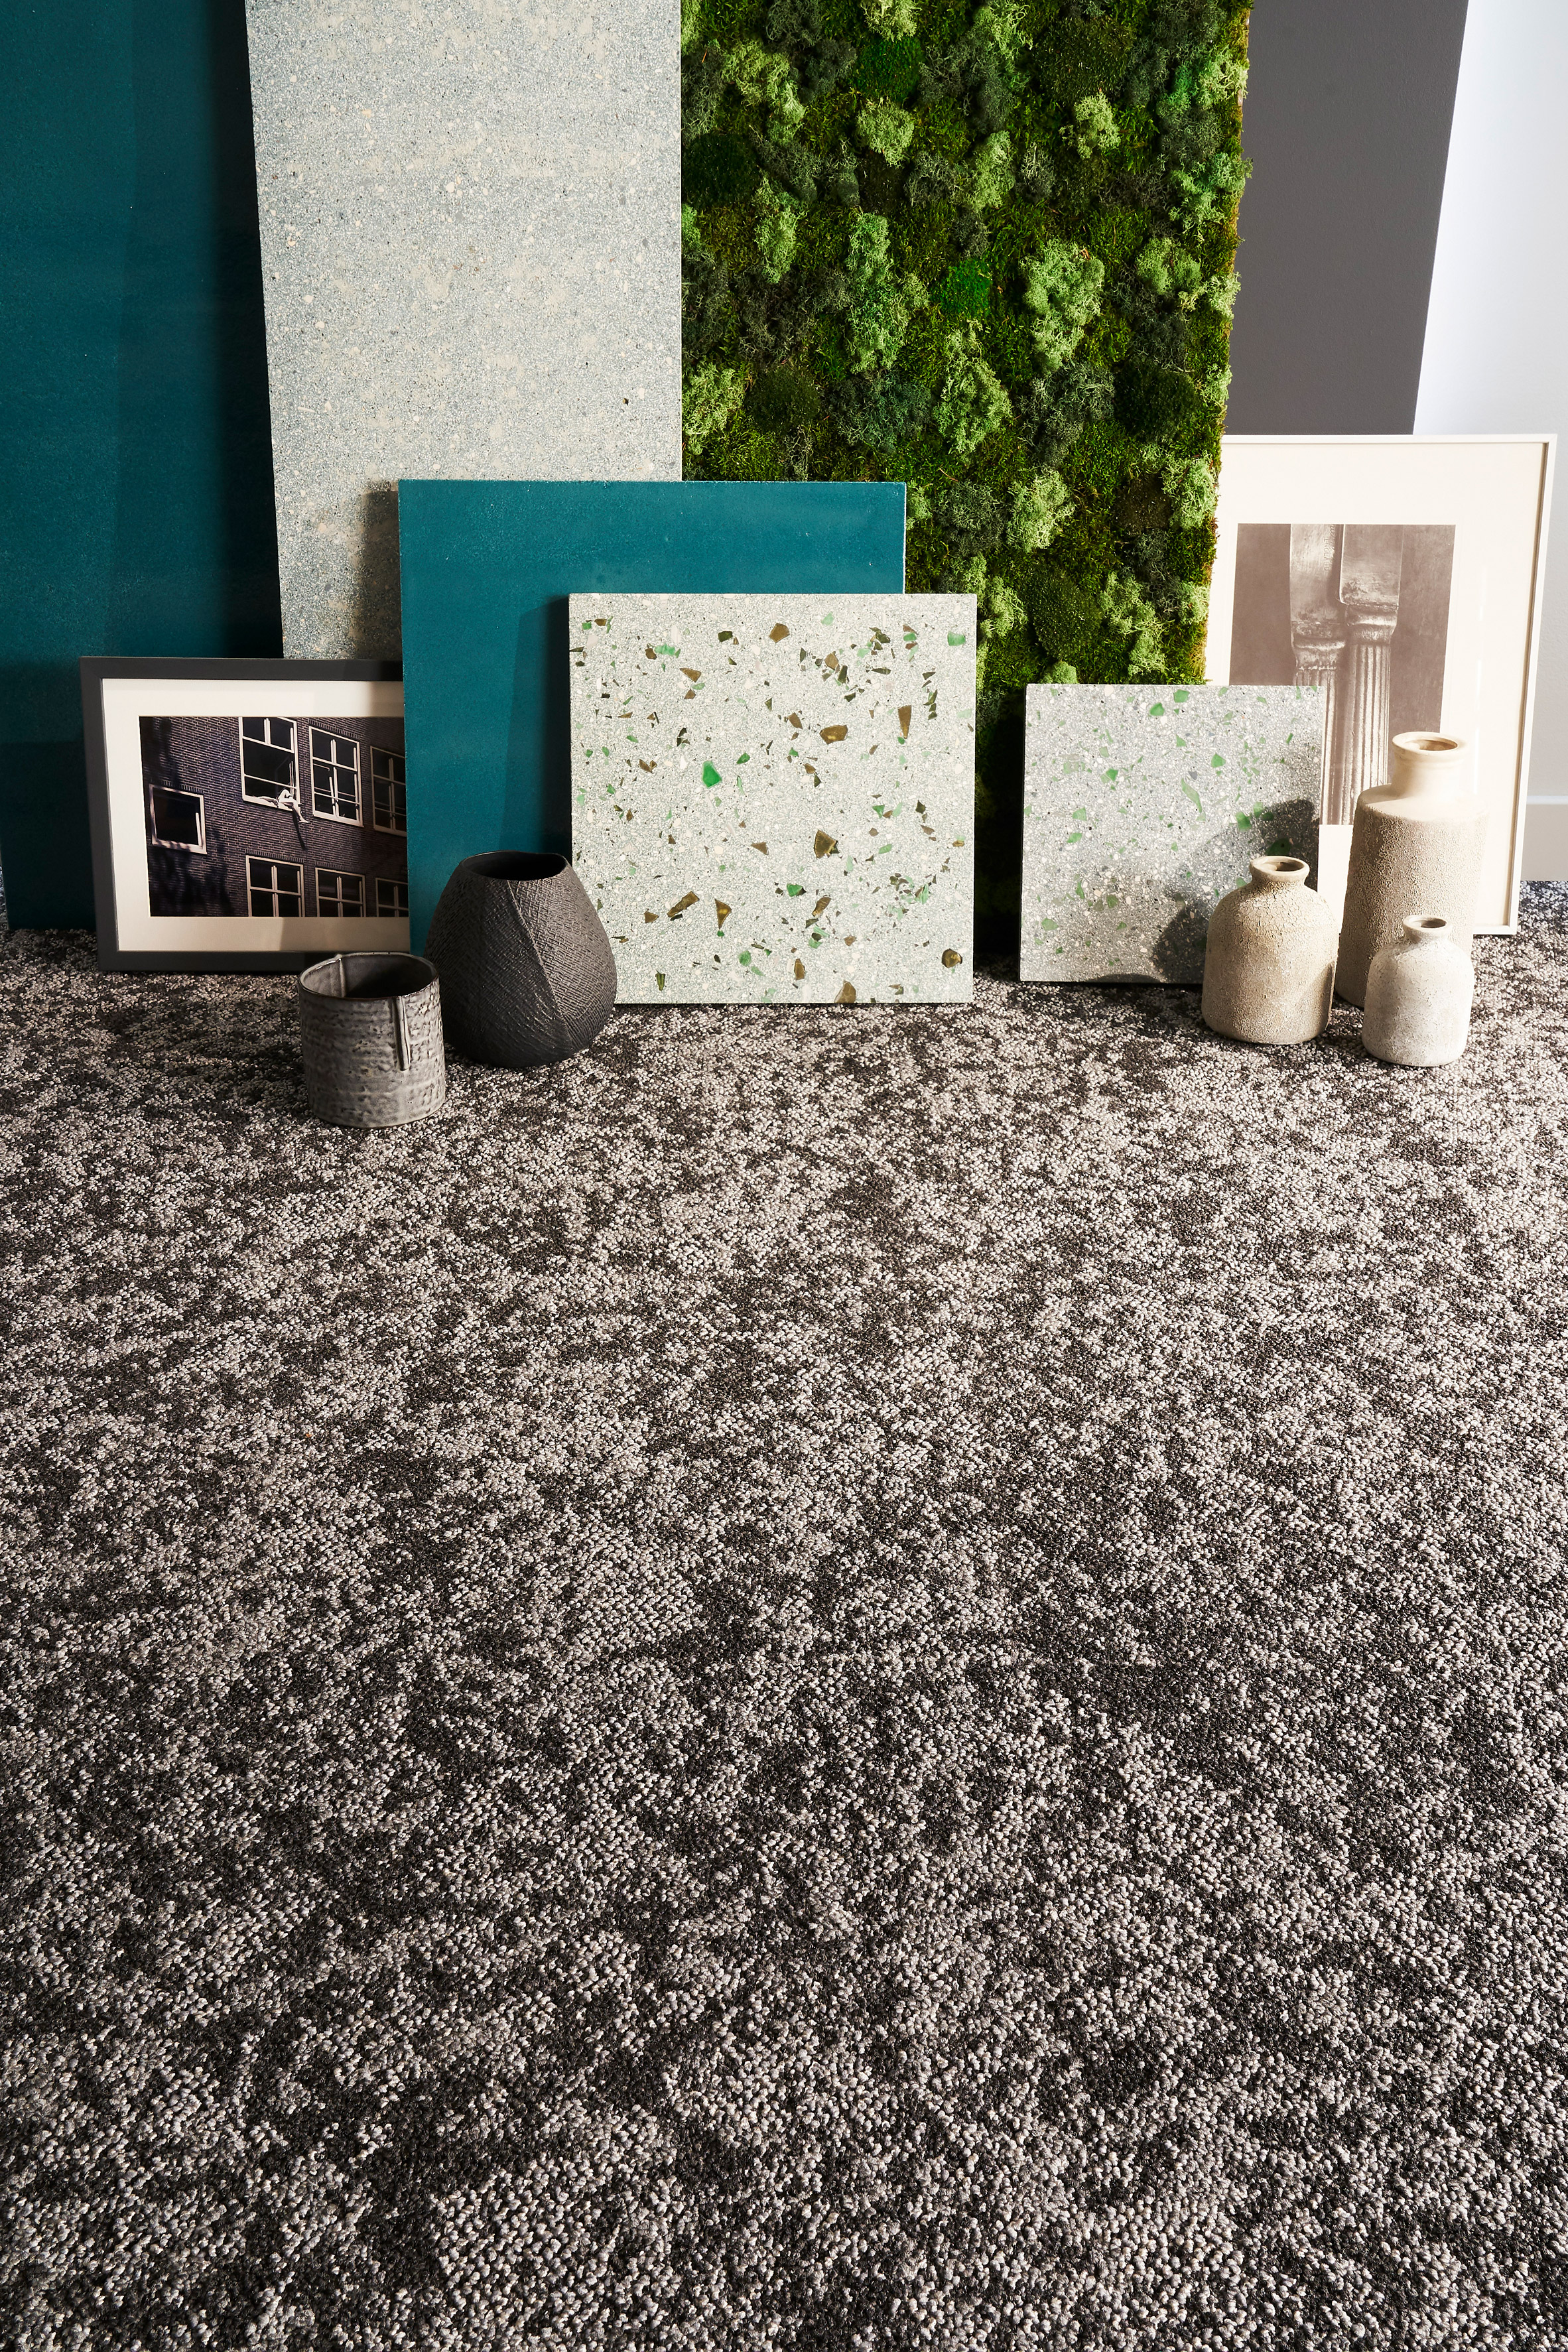 Forbo's Tessera Earthscape carpet tile collection features a dappled effect inspired by nature